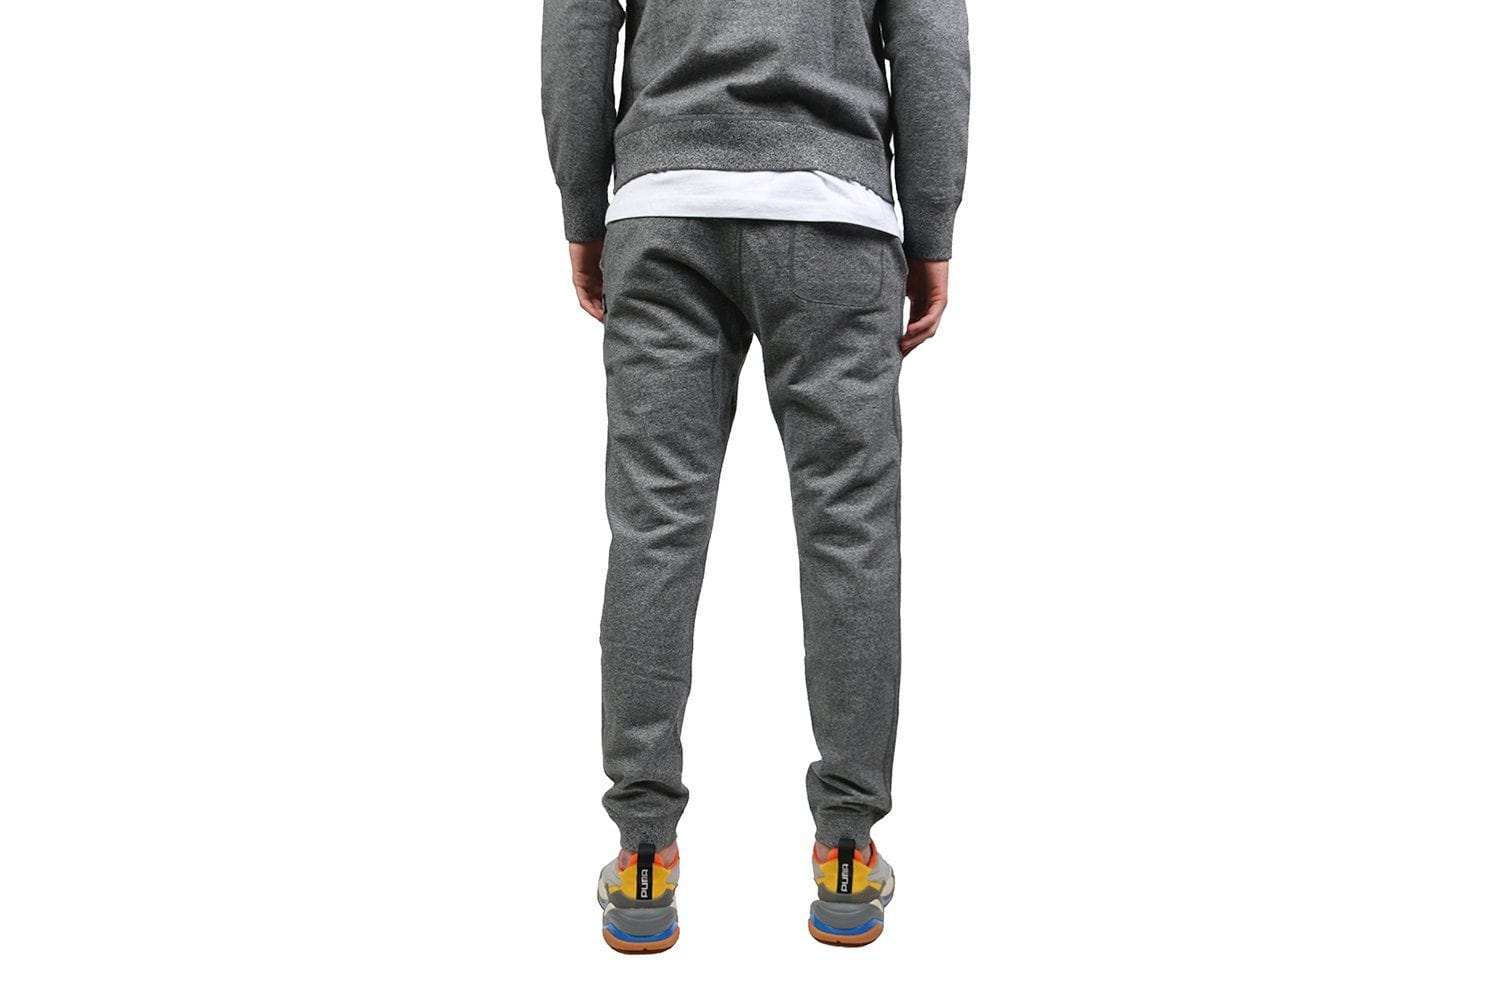 KNIT MID TERRY SLIM SWEATPANT - RC-5075 MENS SOFTGOODS REIGNING CHAMP